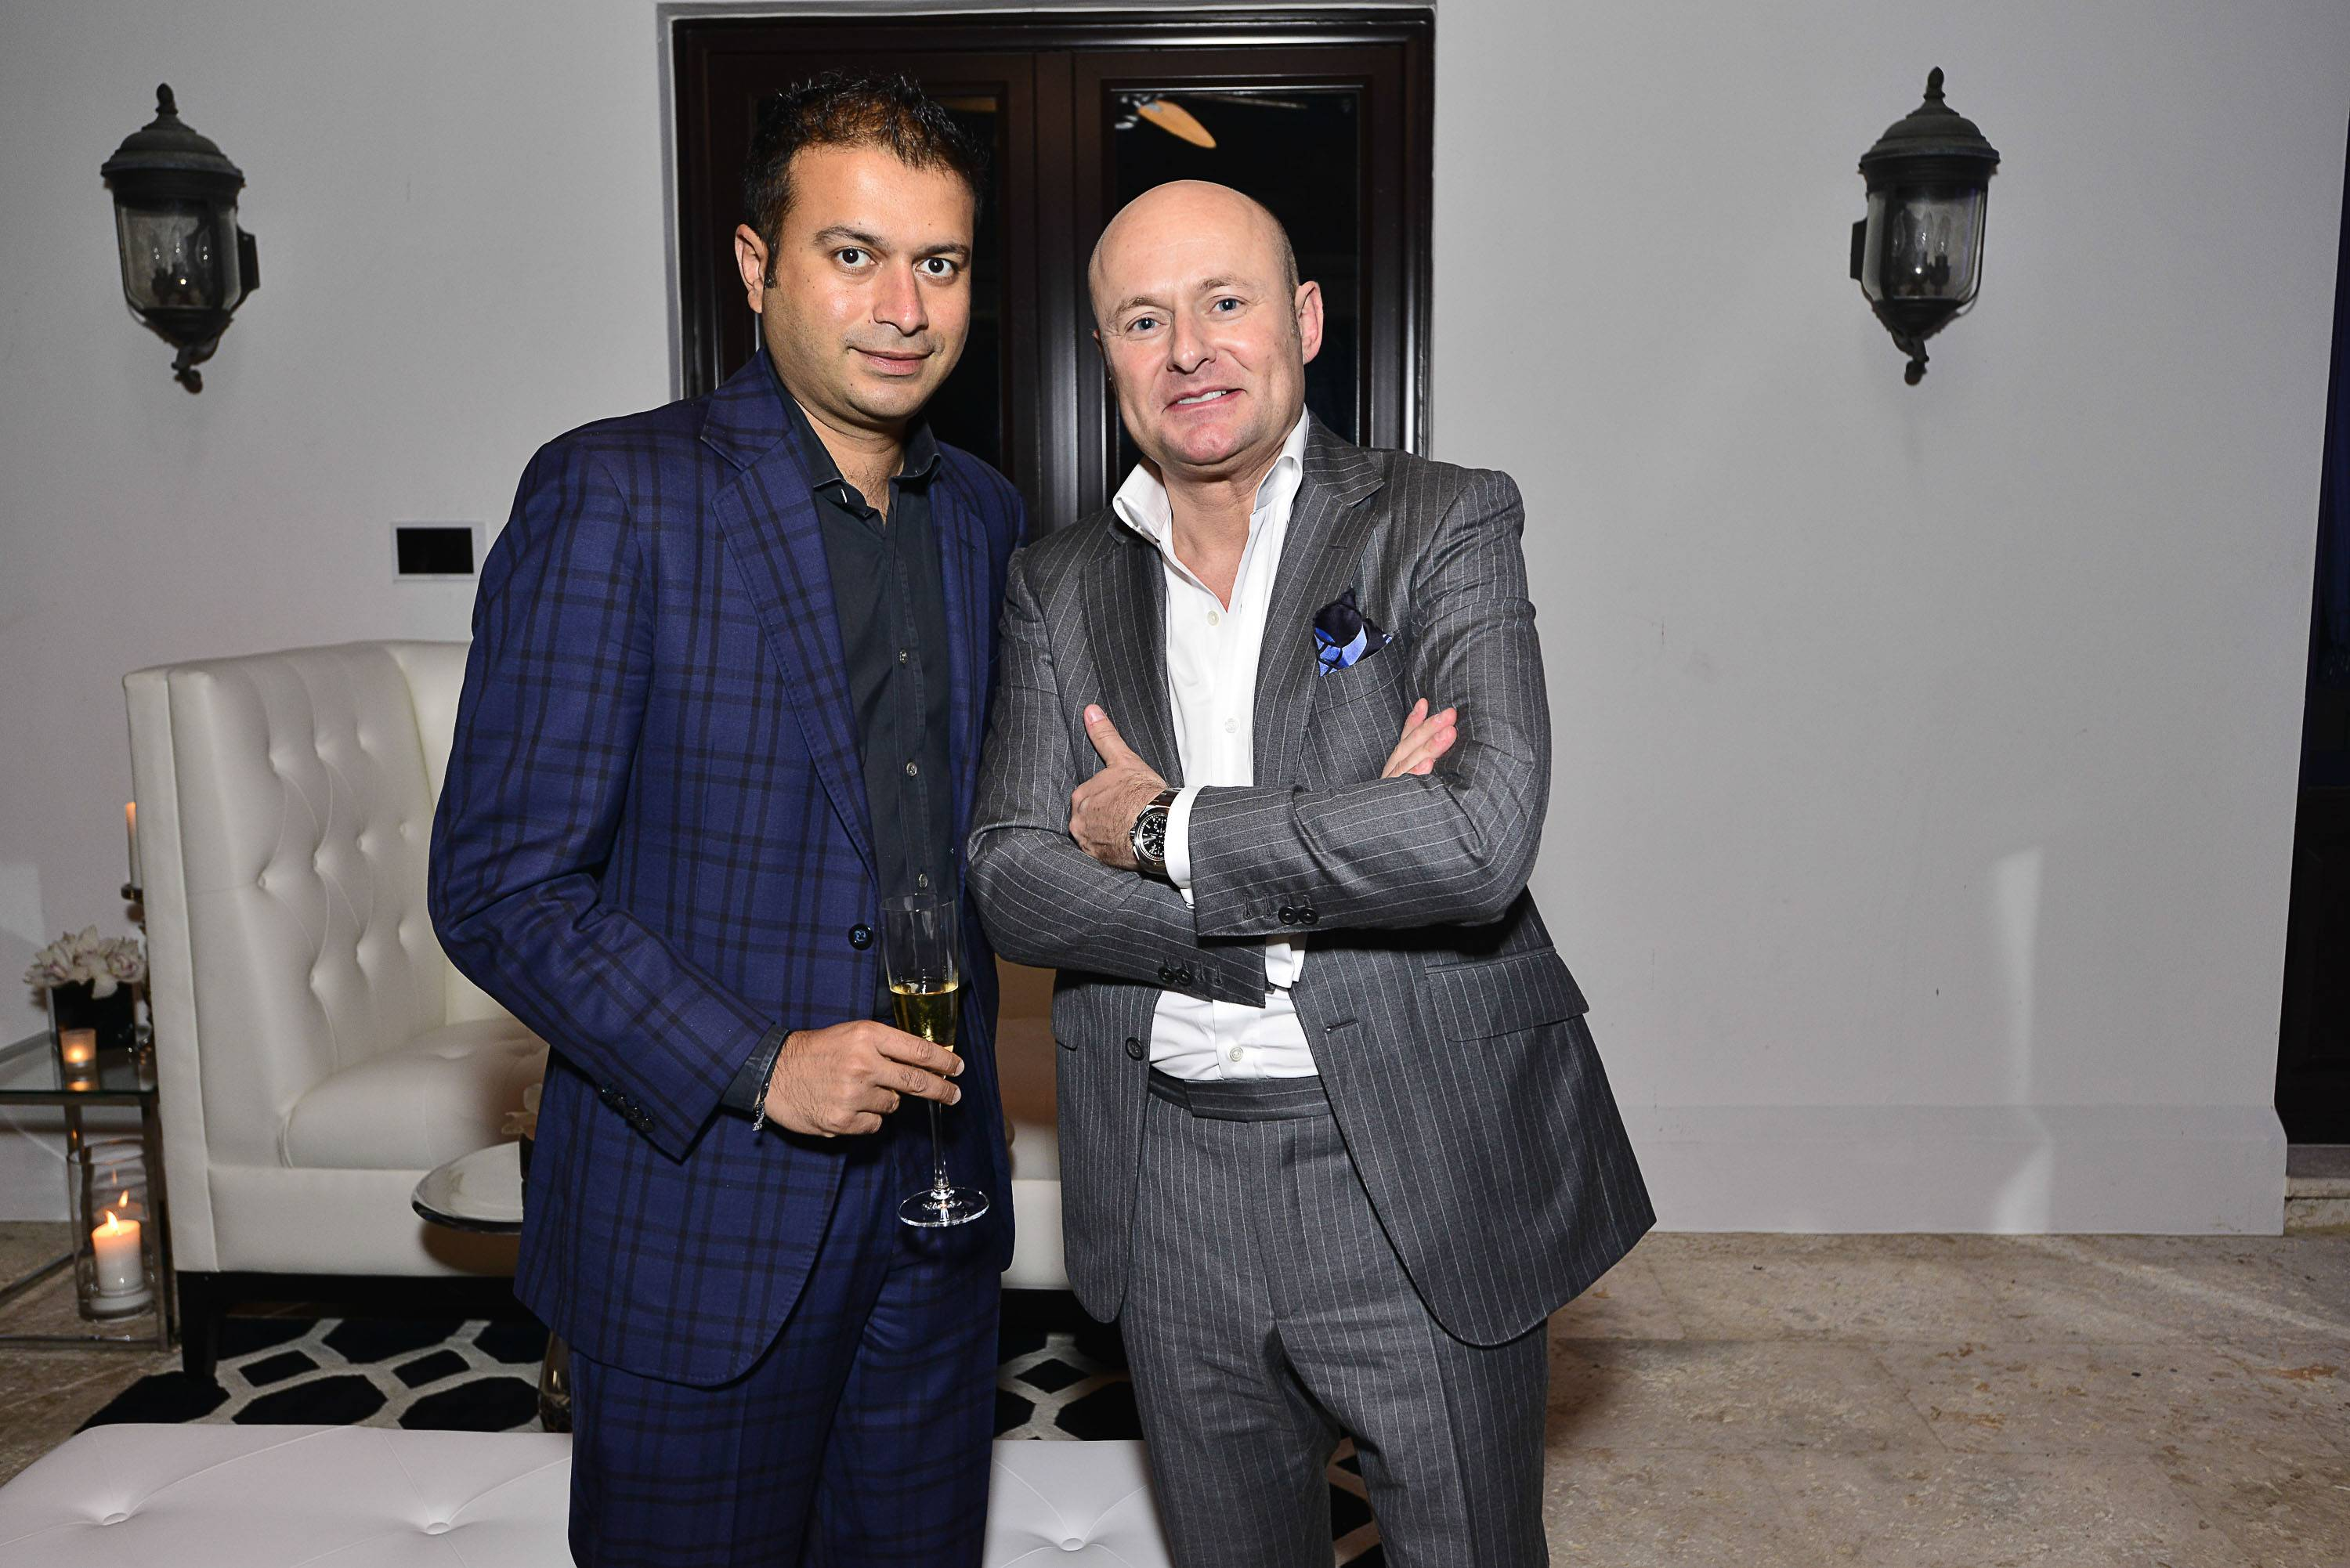 Kamal Hotchandani and Georges Kern